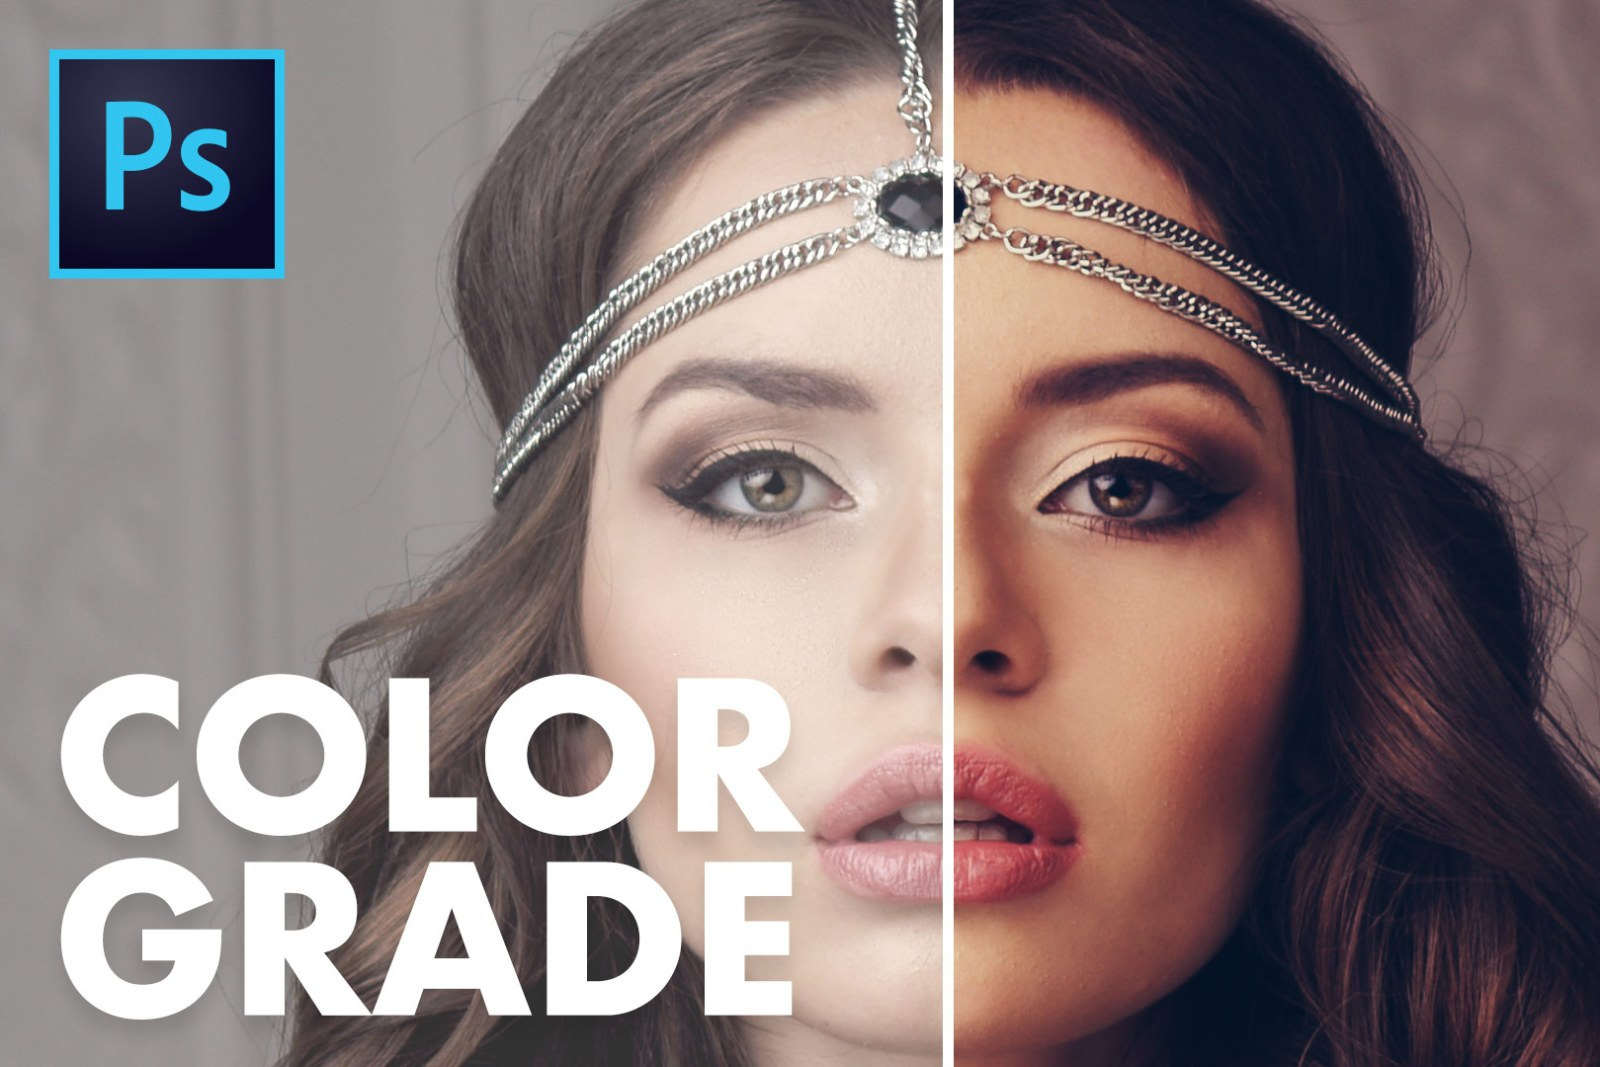 Color Grading in Photoshop CC (TIPS & TRICKS!) works for Photography & VIDEO!